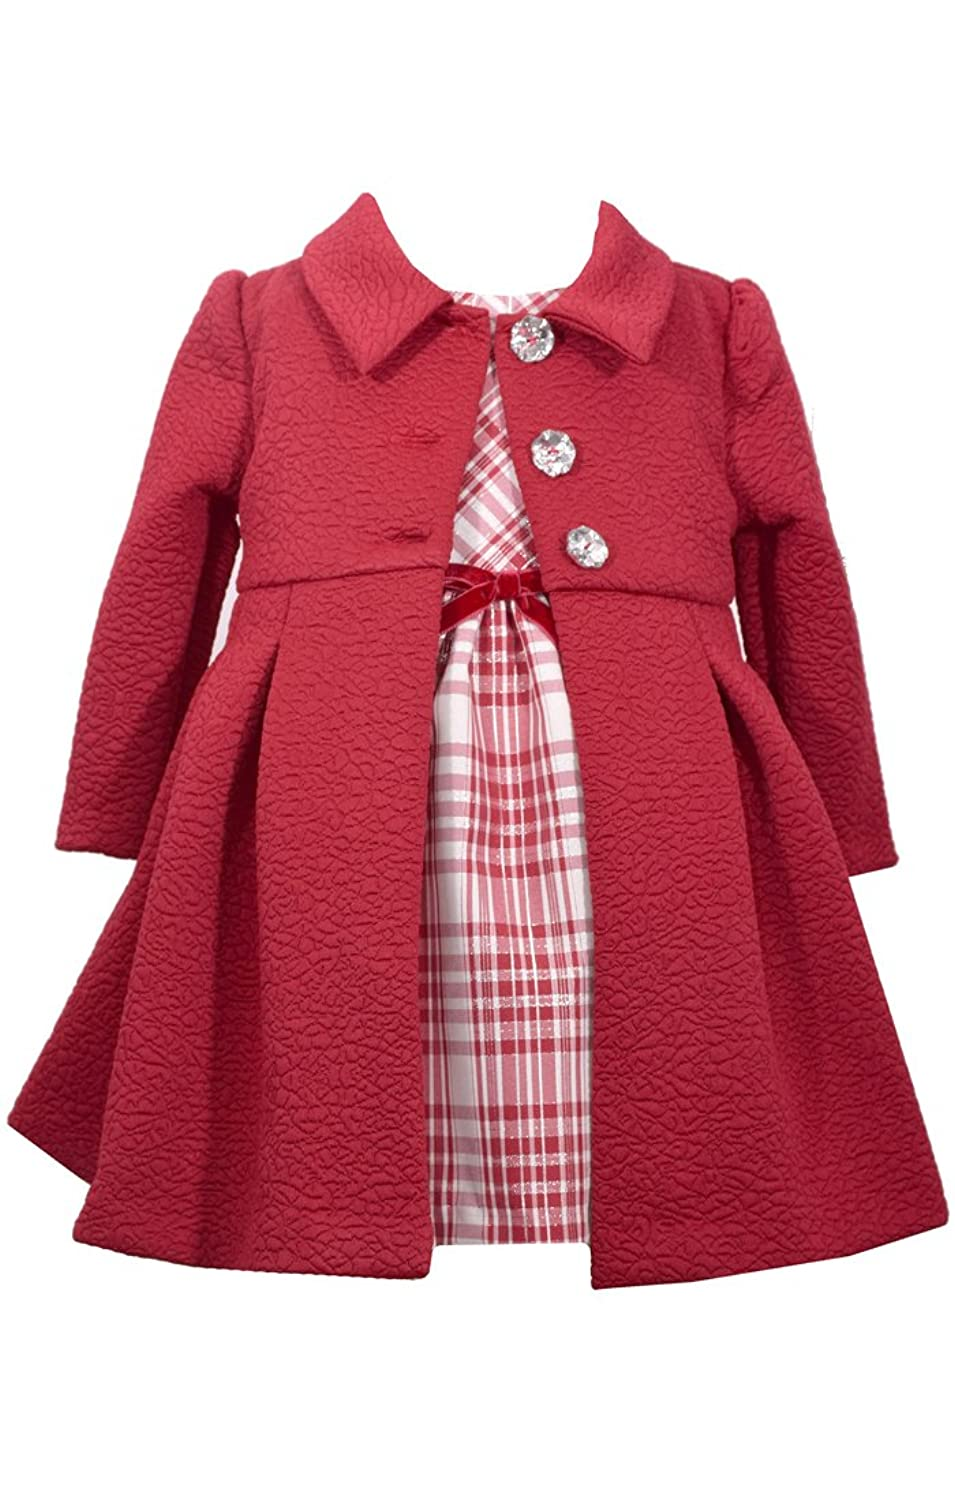 Kids 1950s Clothing & Costumes: Girls, Boys, Toddlers Bonnie Jean Girls Cranberry & Silver Plaid Dress with Cranberry Coat $49.99 AT vintagedancer.com